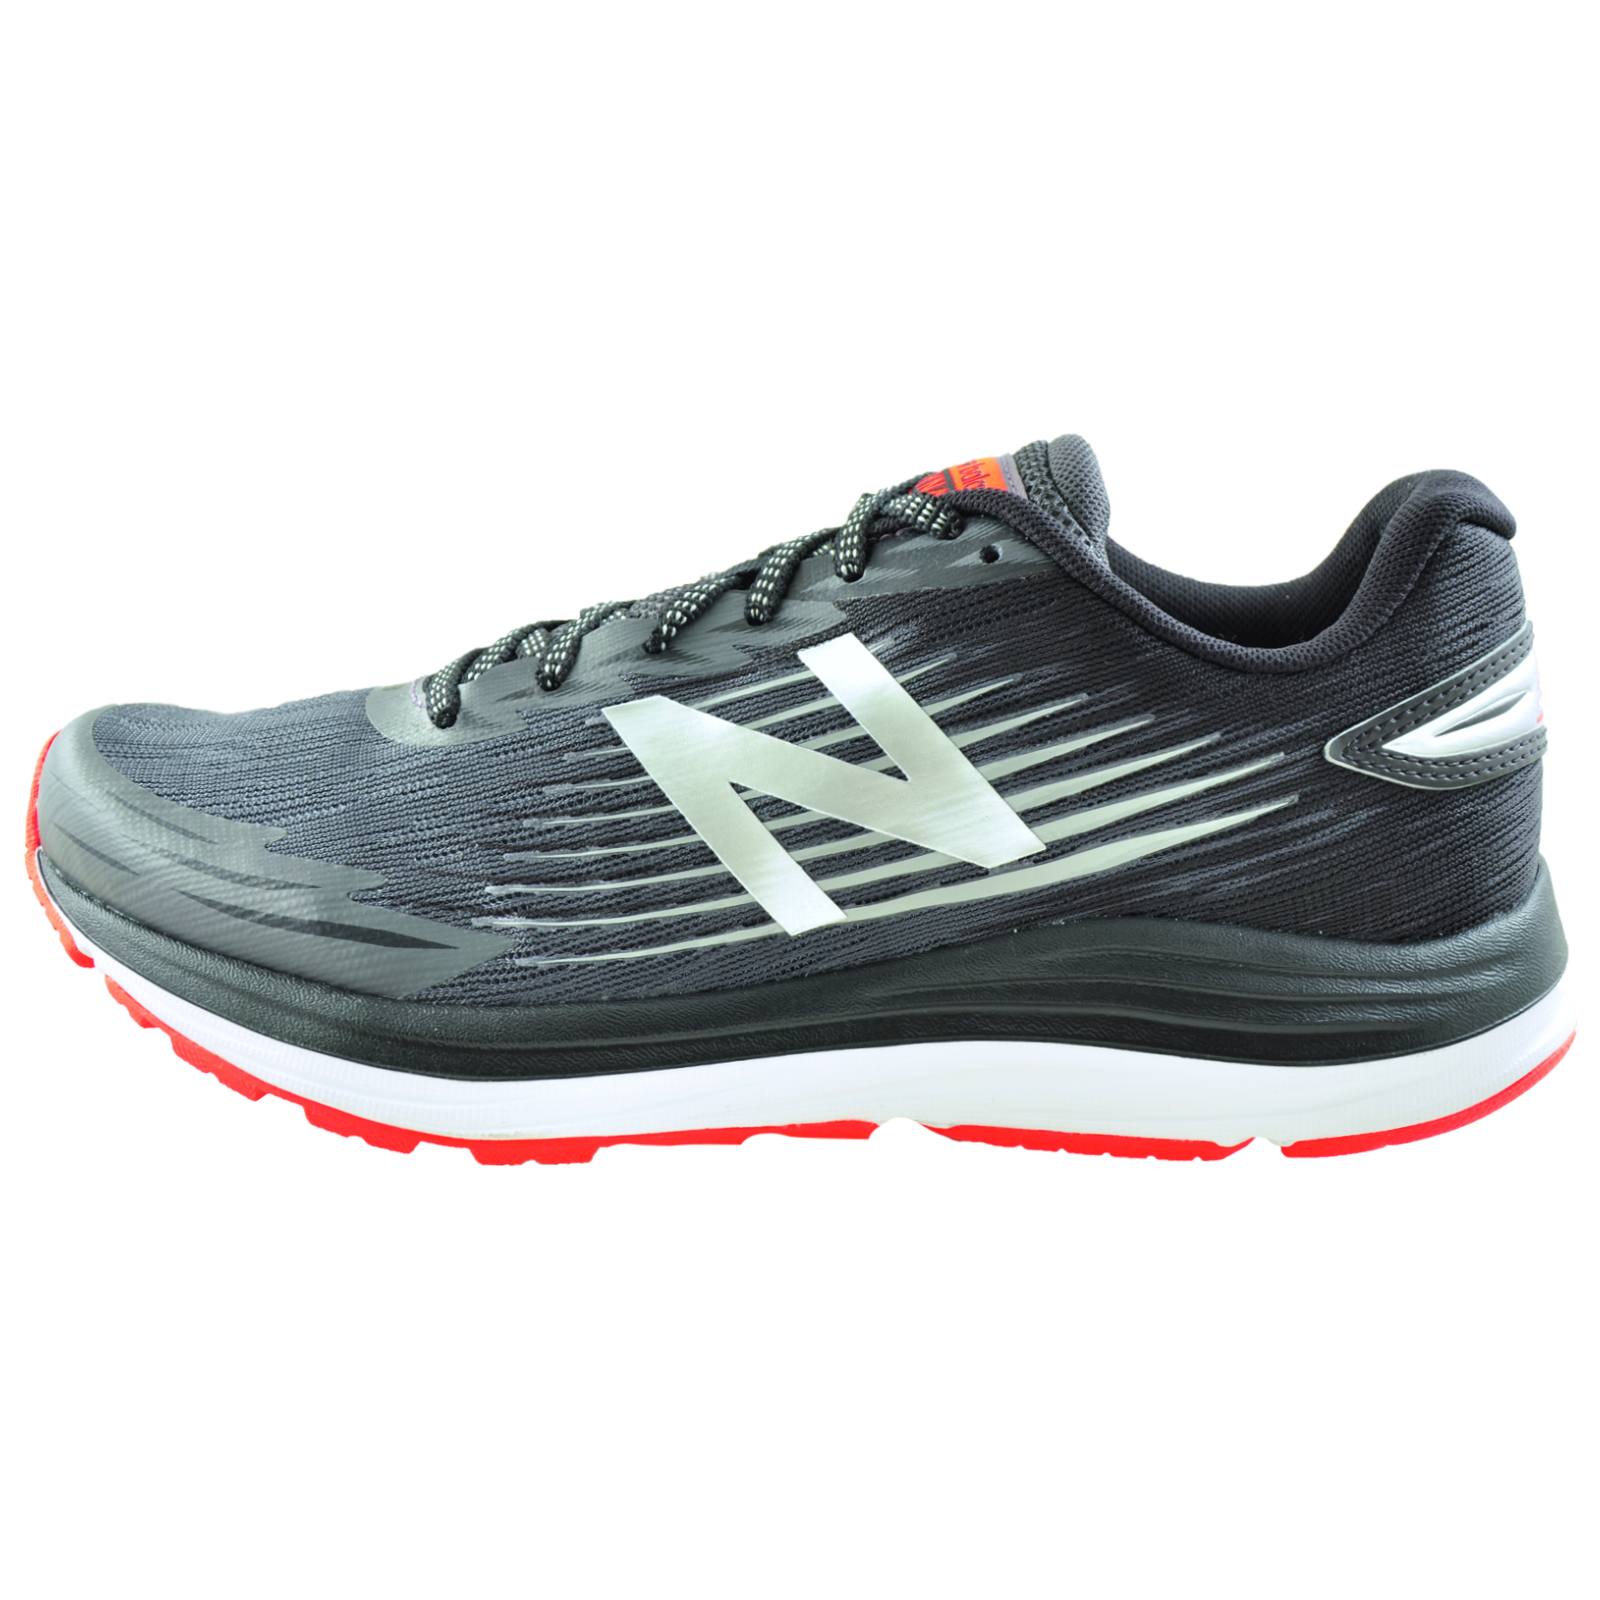 official photos 992be a2f41 Details about New Balance Synact 660 V5 Premium Mens Running Shoes Gym  Fitness Trainers Black